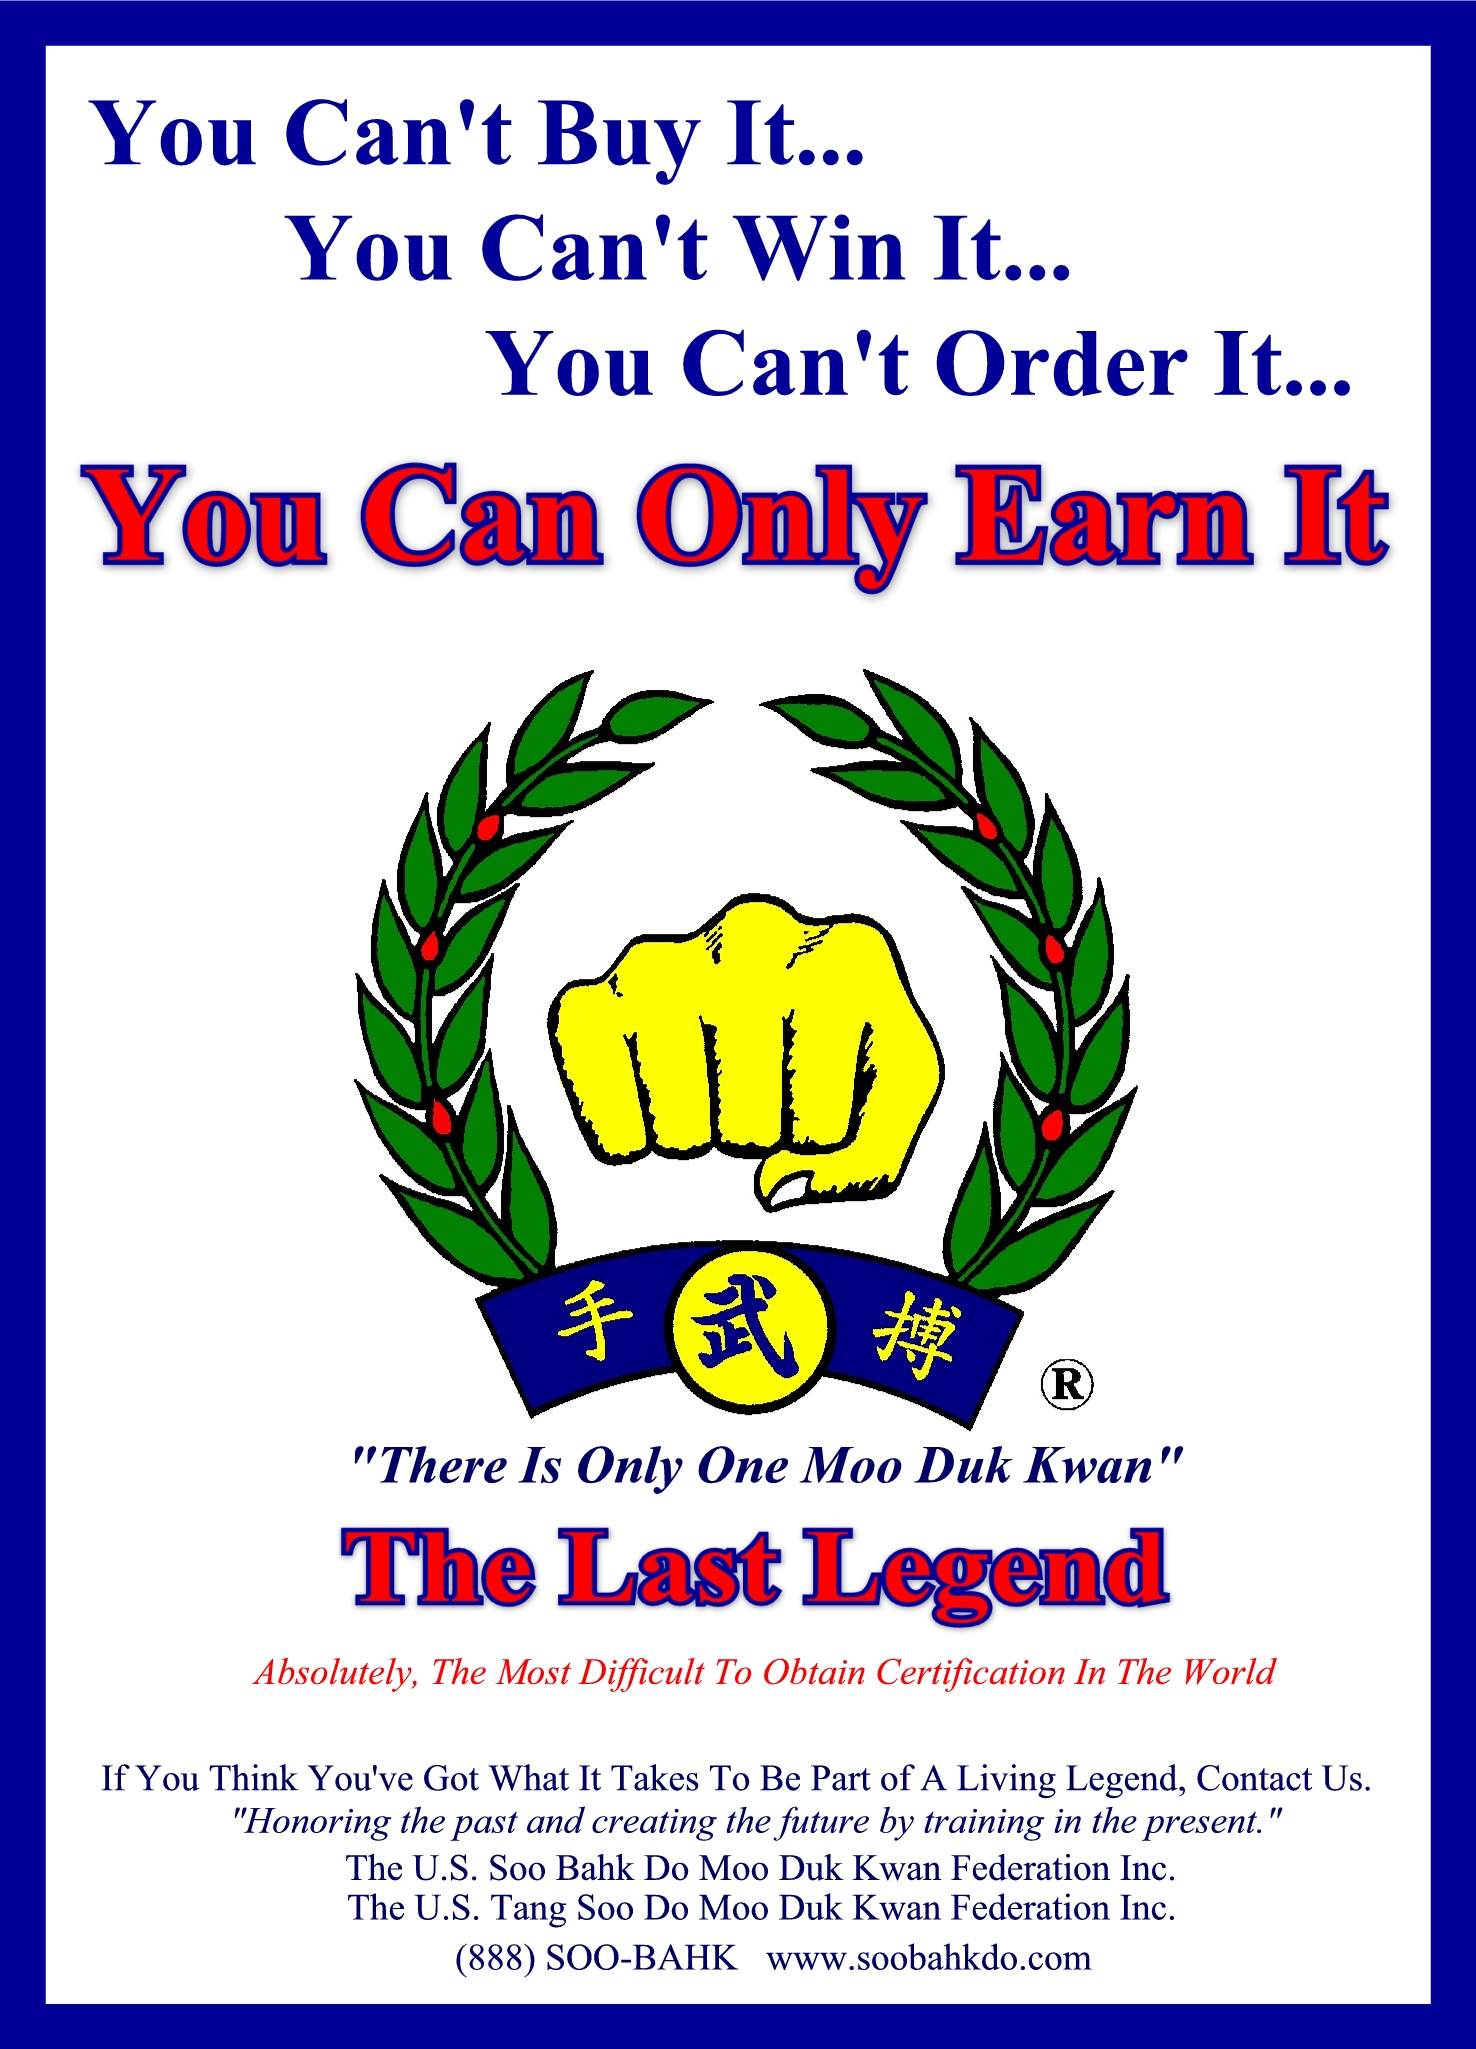 Dan Ja Shim Sa On Facebook  C2 B7 Cant_buy_it_last_legend_2_fist_only_logoc97b